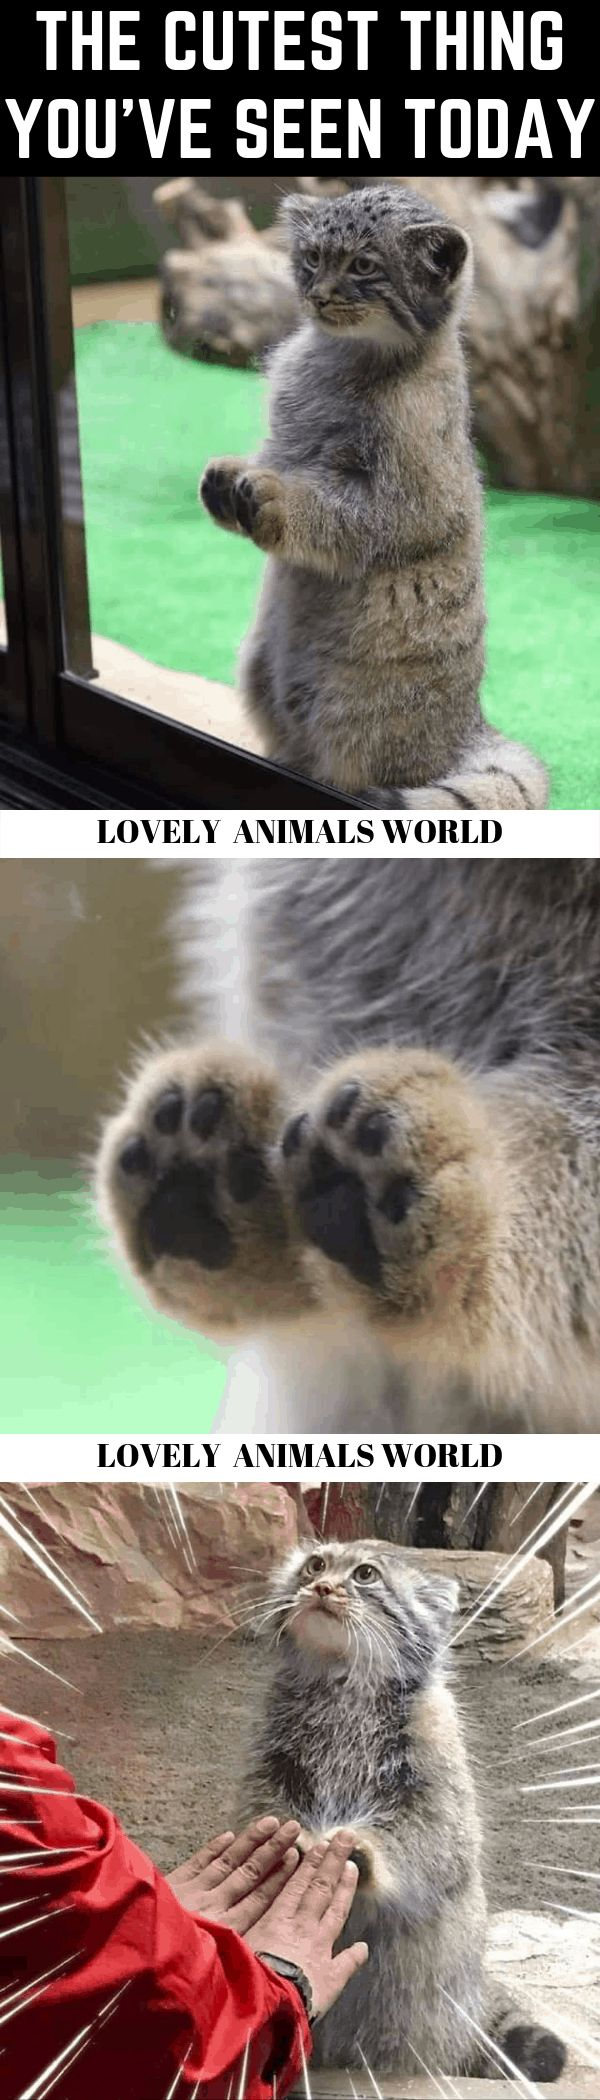 Cat Memes Of The Day 32 Pics – Ep60 #animalmemes #catmemes #memes – Lovely Animals World